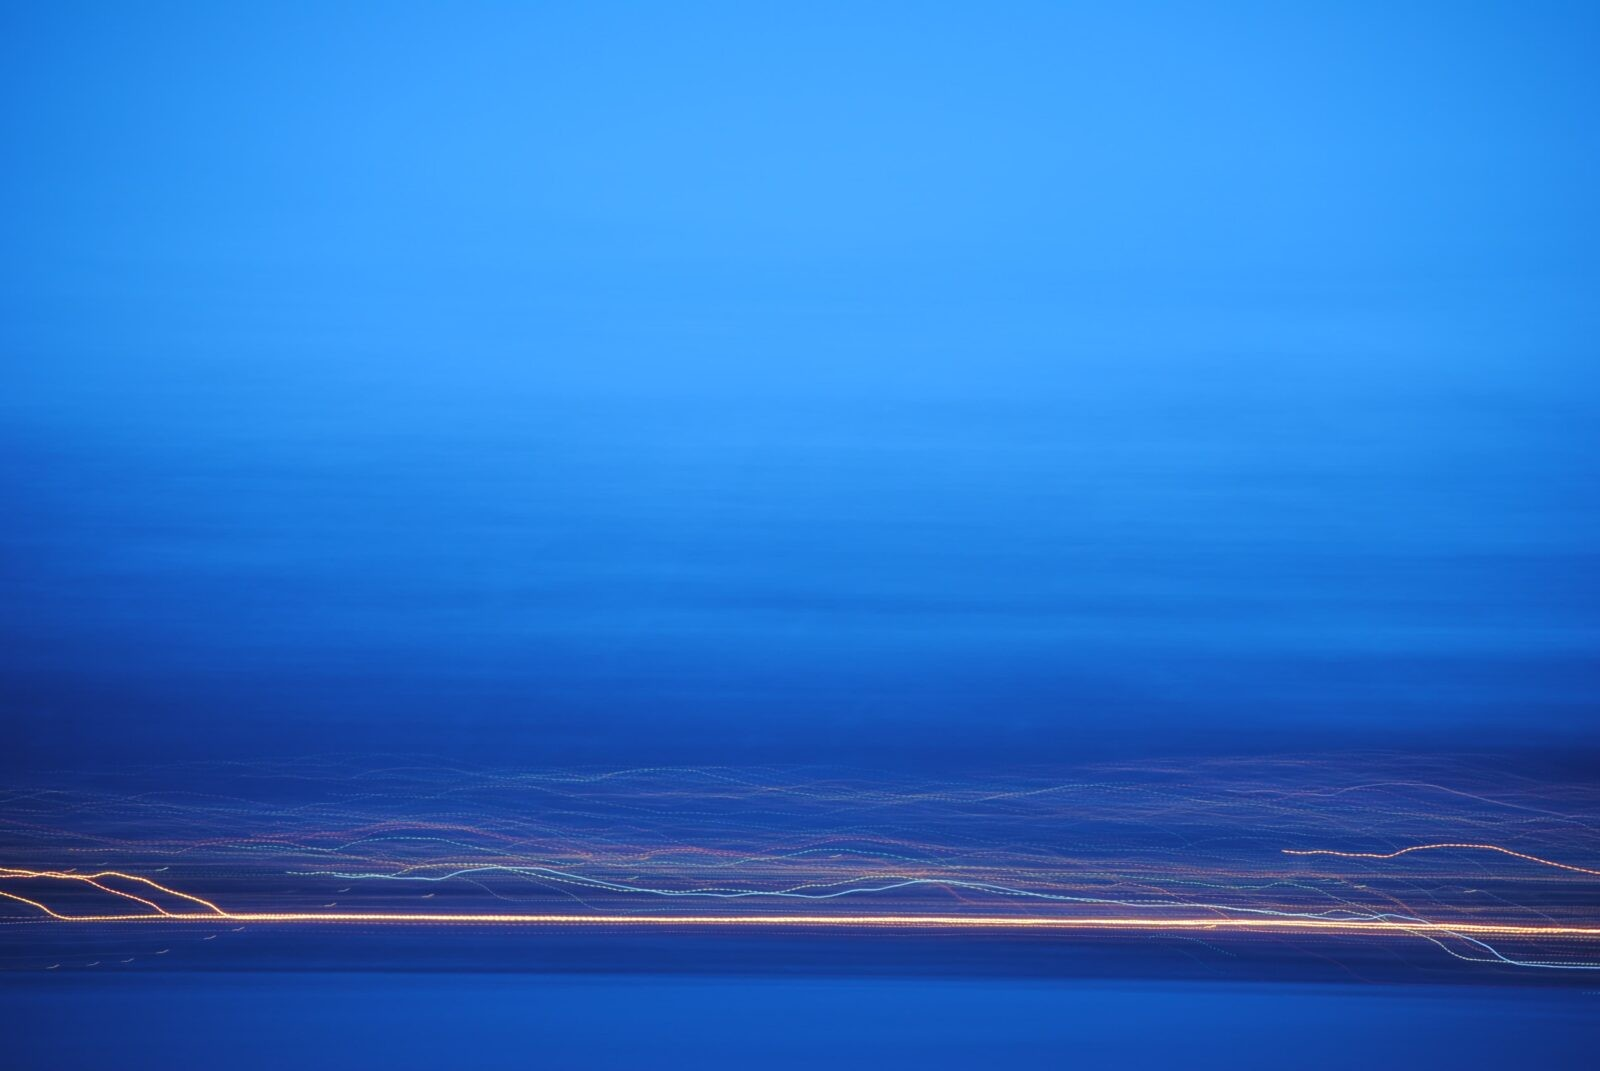 Extraordinary Blue abstract image